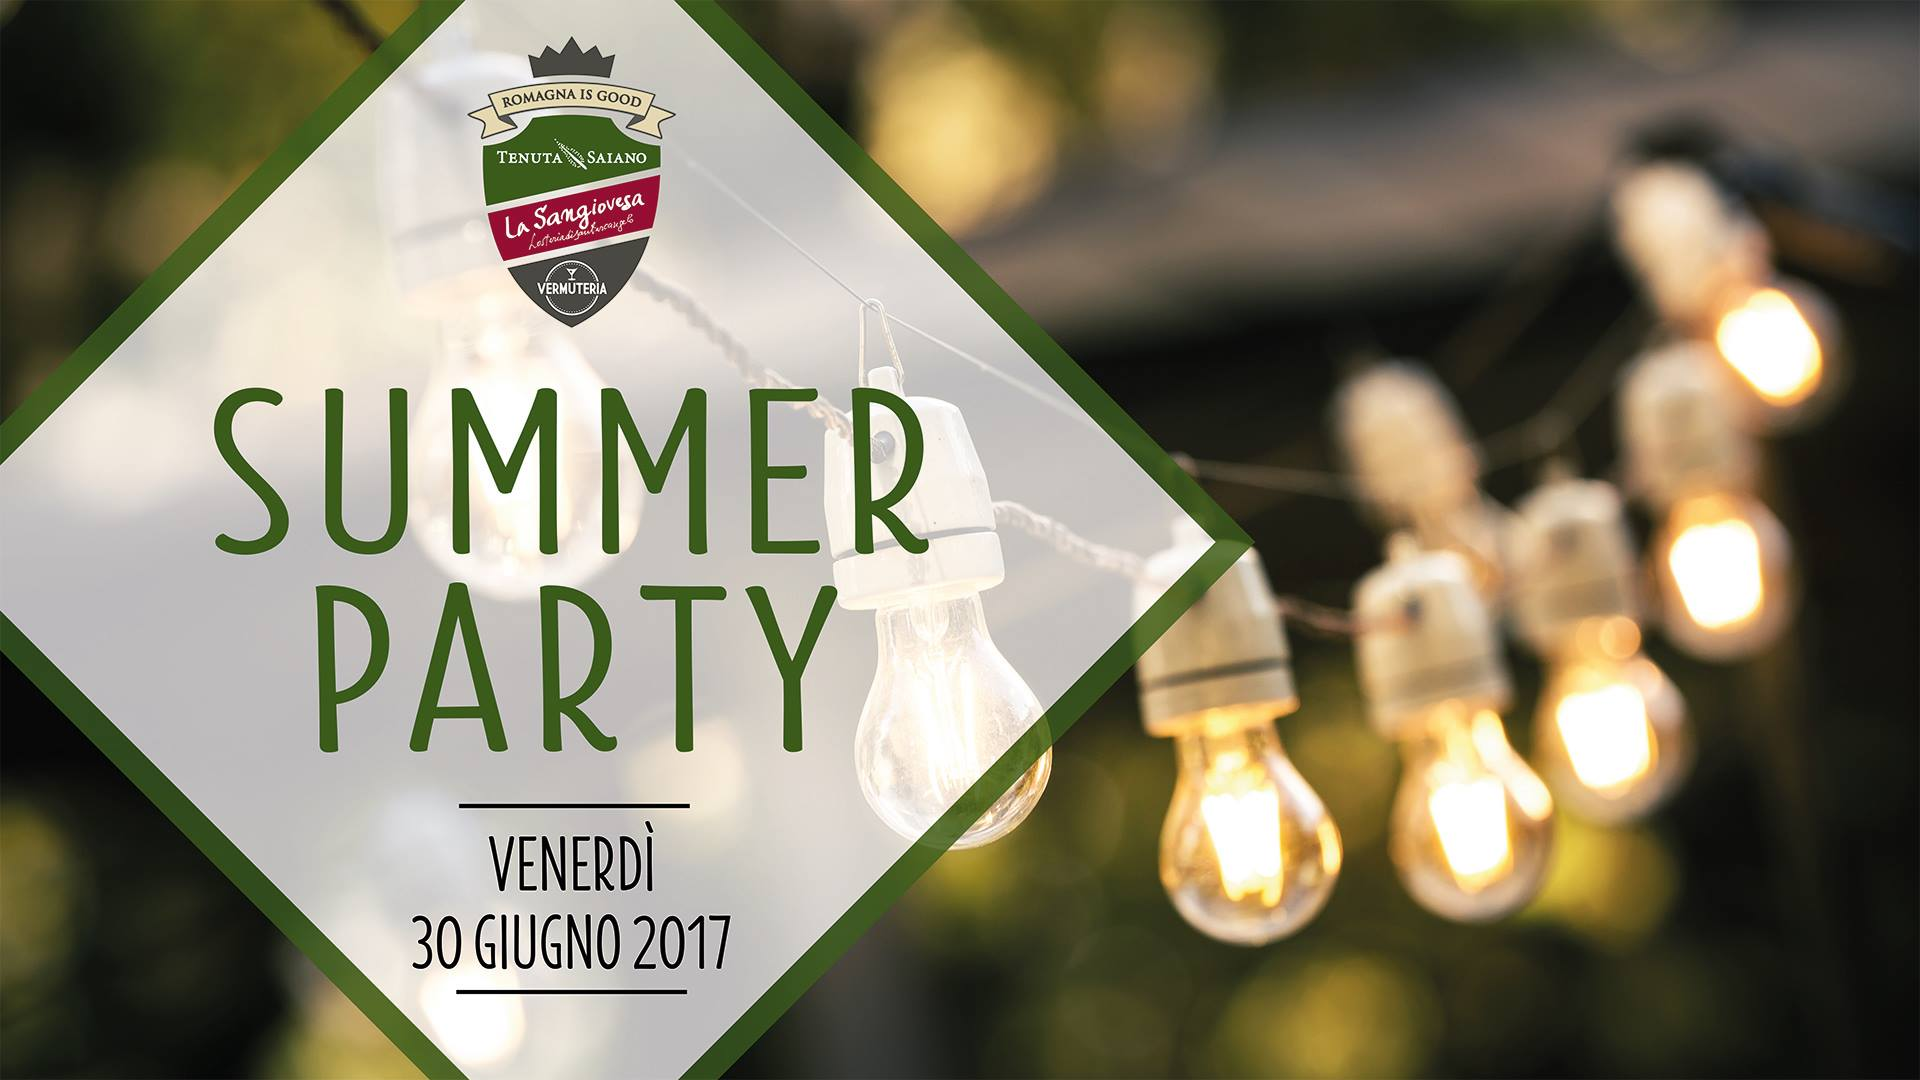 summer-party-saiano